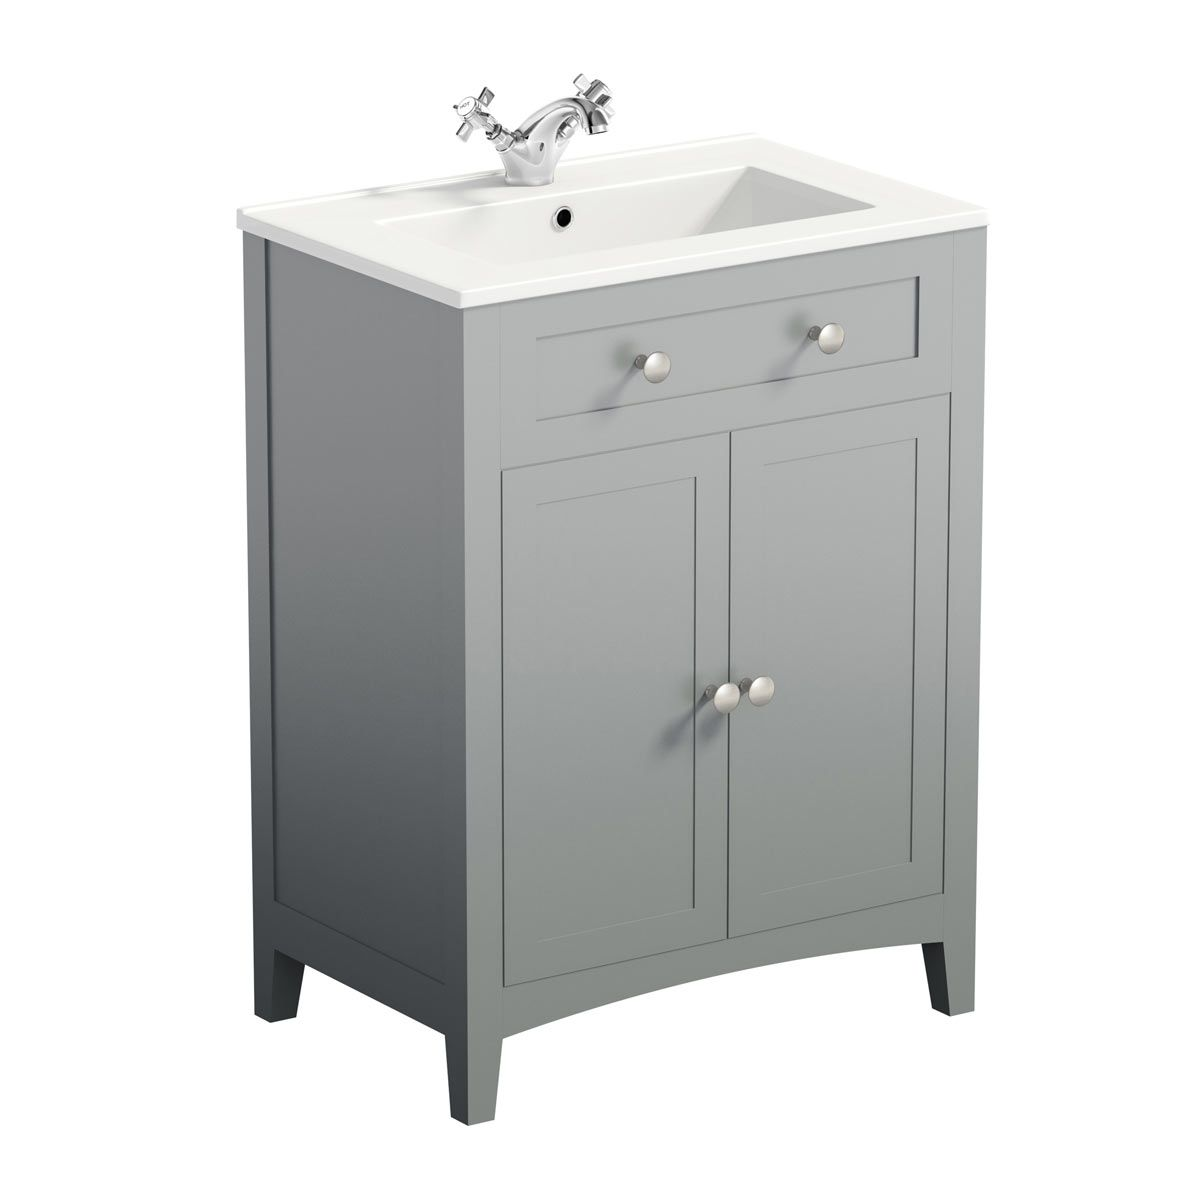 sink with vanity unit. Camberley Grey 600mm Vanity Unit With Basin And Waste The Bath Co